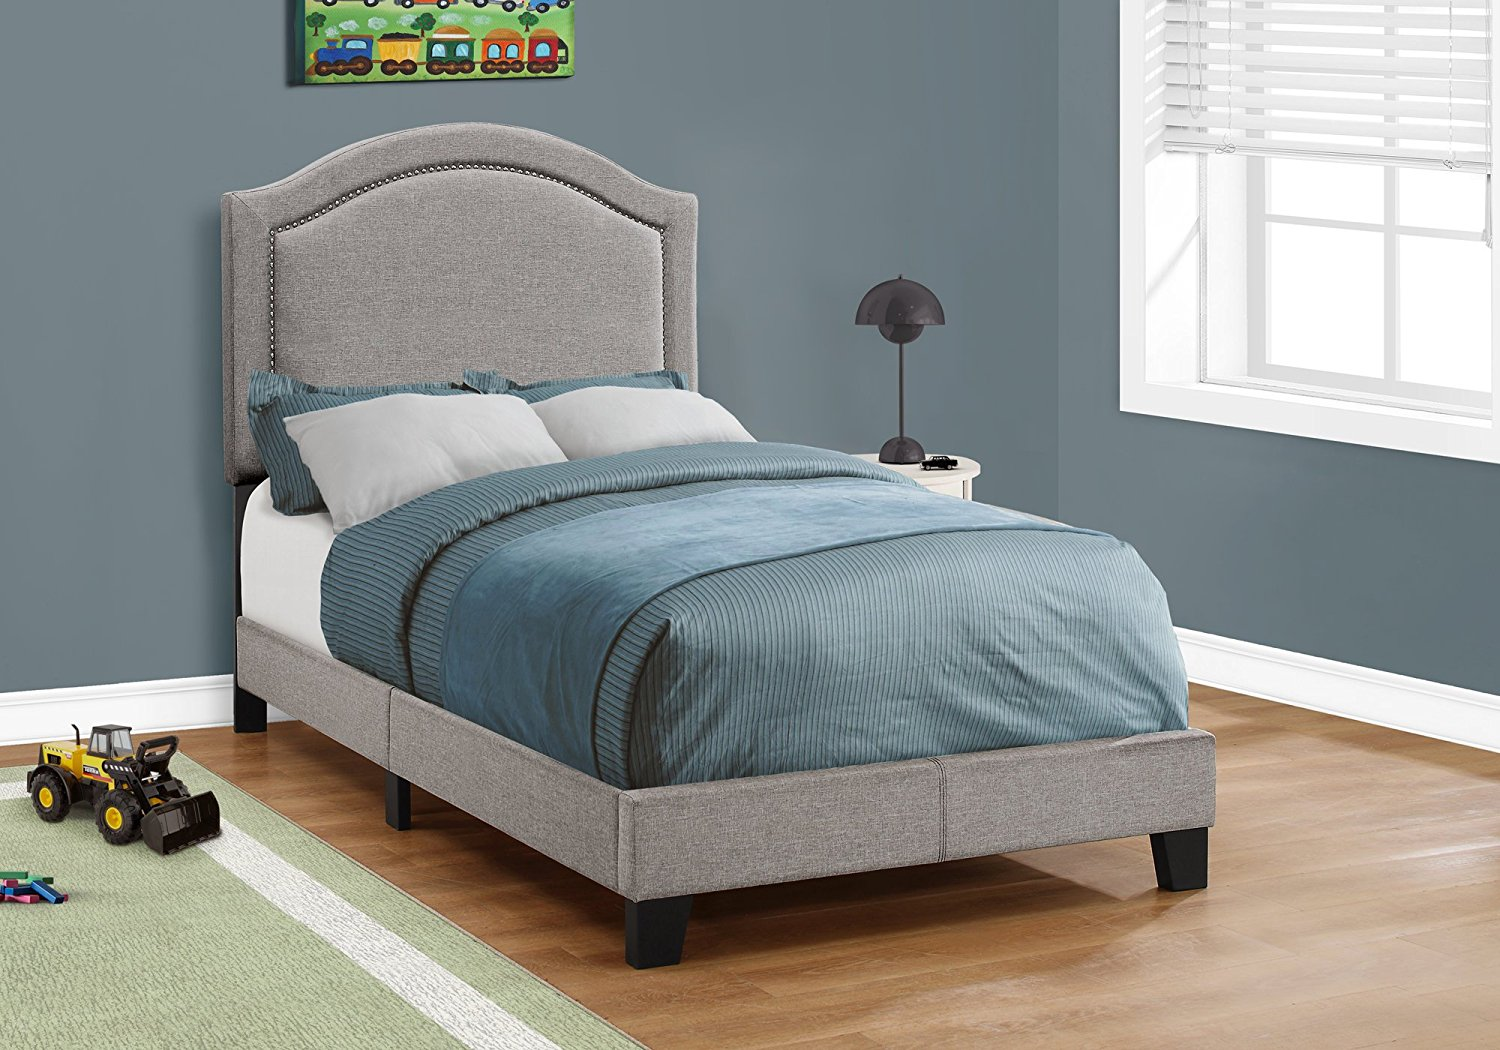 Monarch Specialties I5936t Twin Size Bed In Grey Linen With Chrome